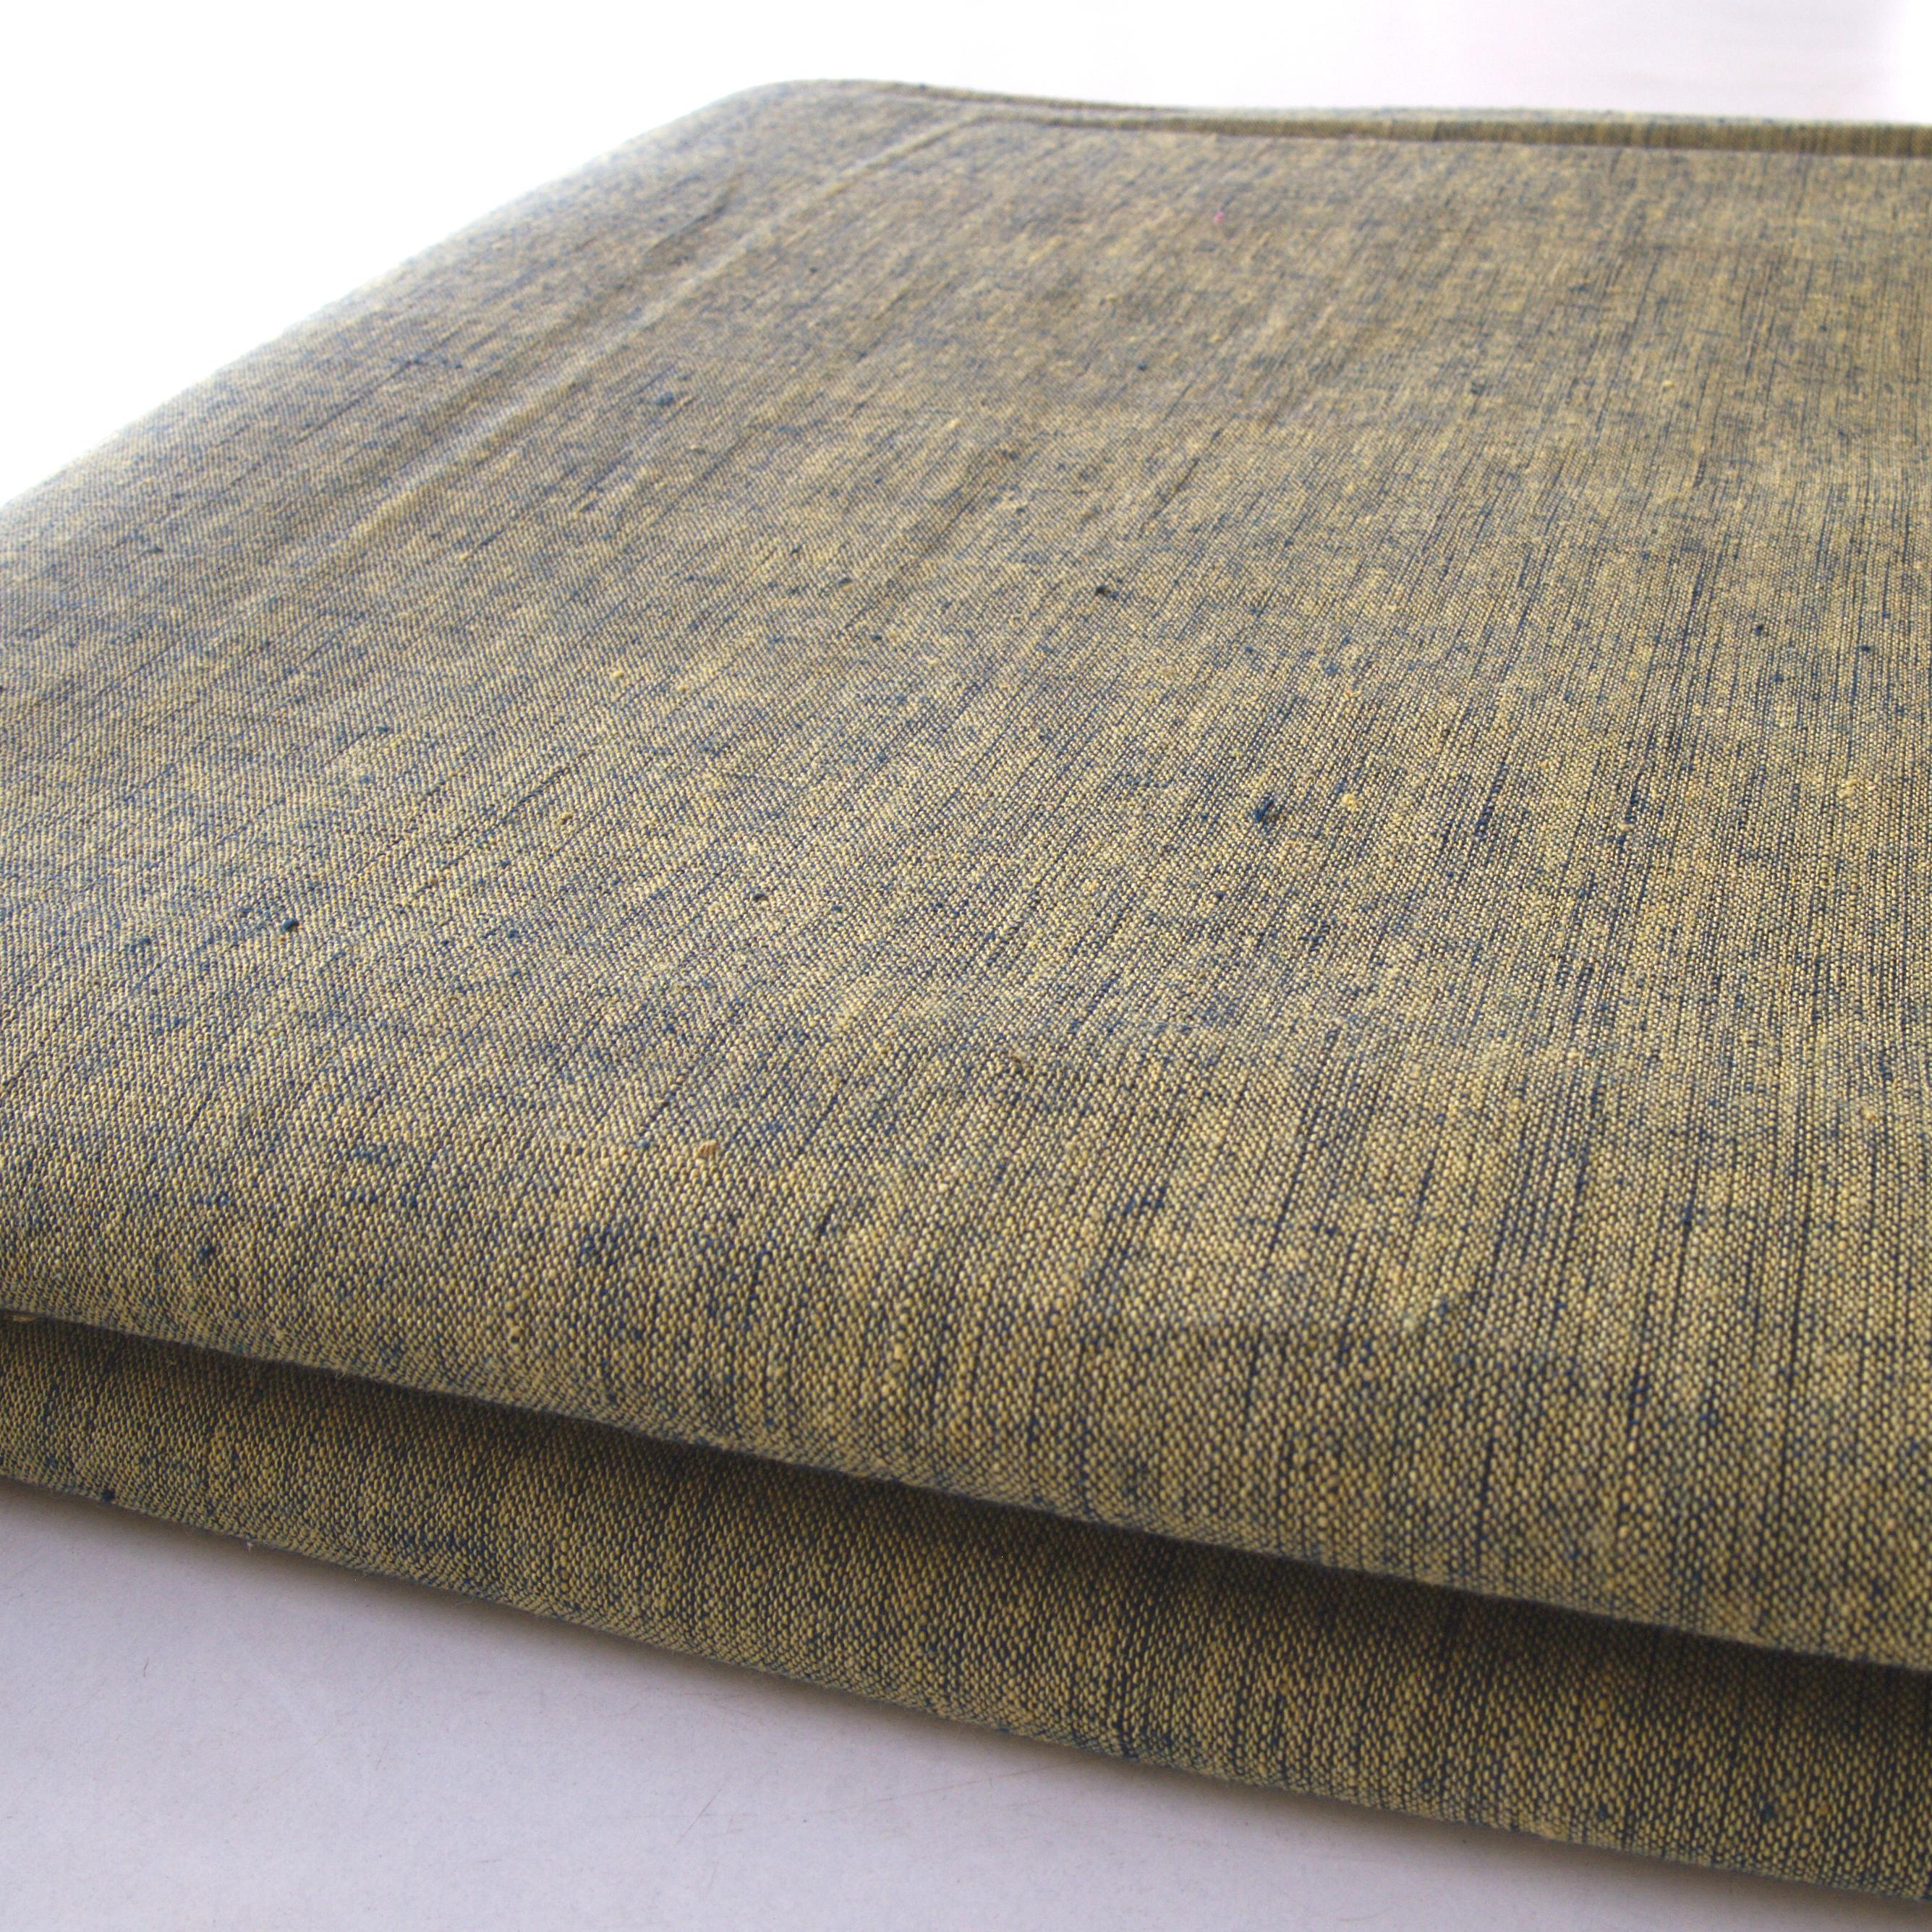 100 % Handloom Woven Cotton - Cross Colour - Pomegranate Yellow Warp, Natural Indigo Weft - Bolt